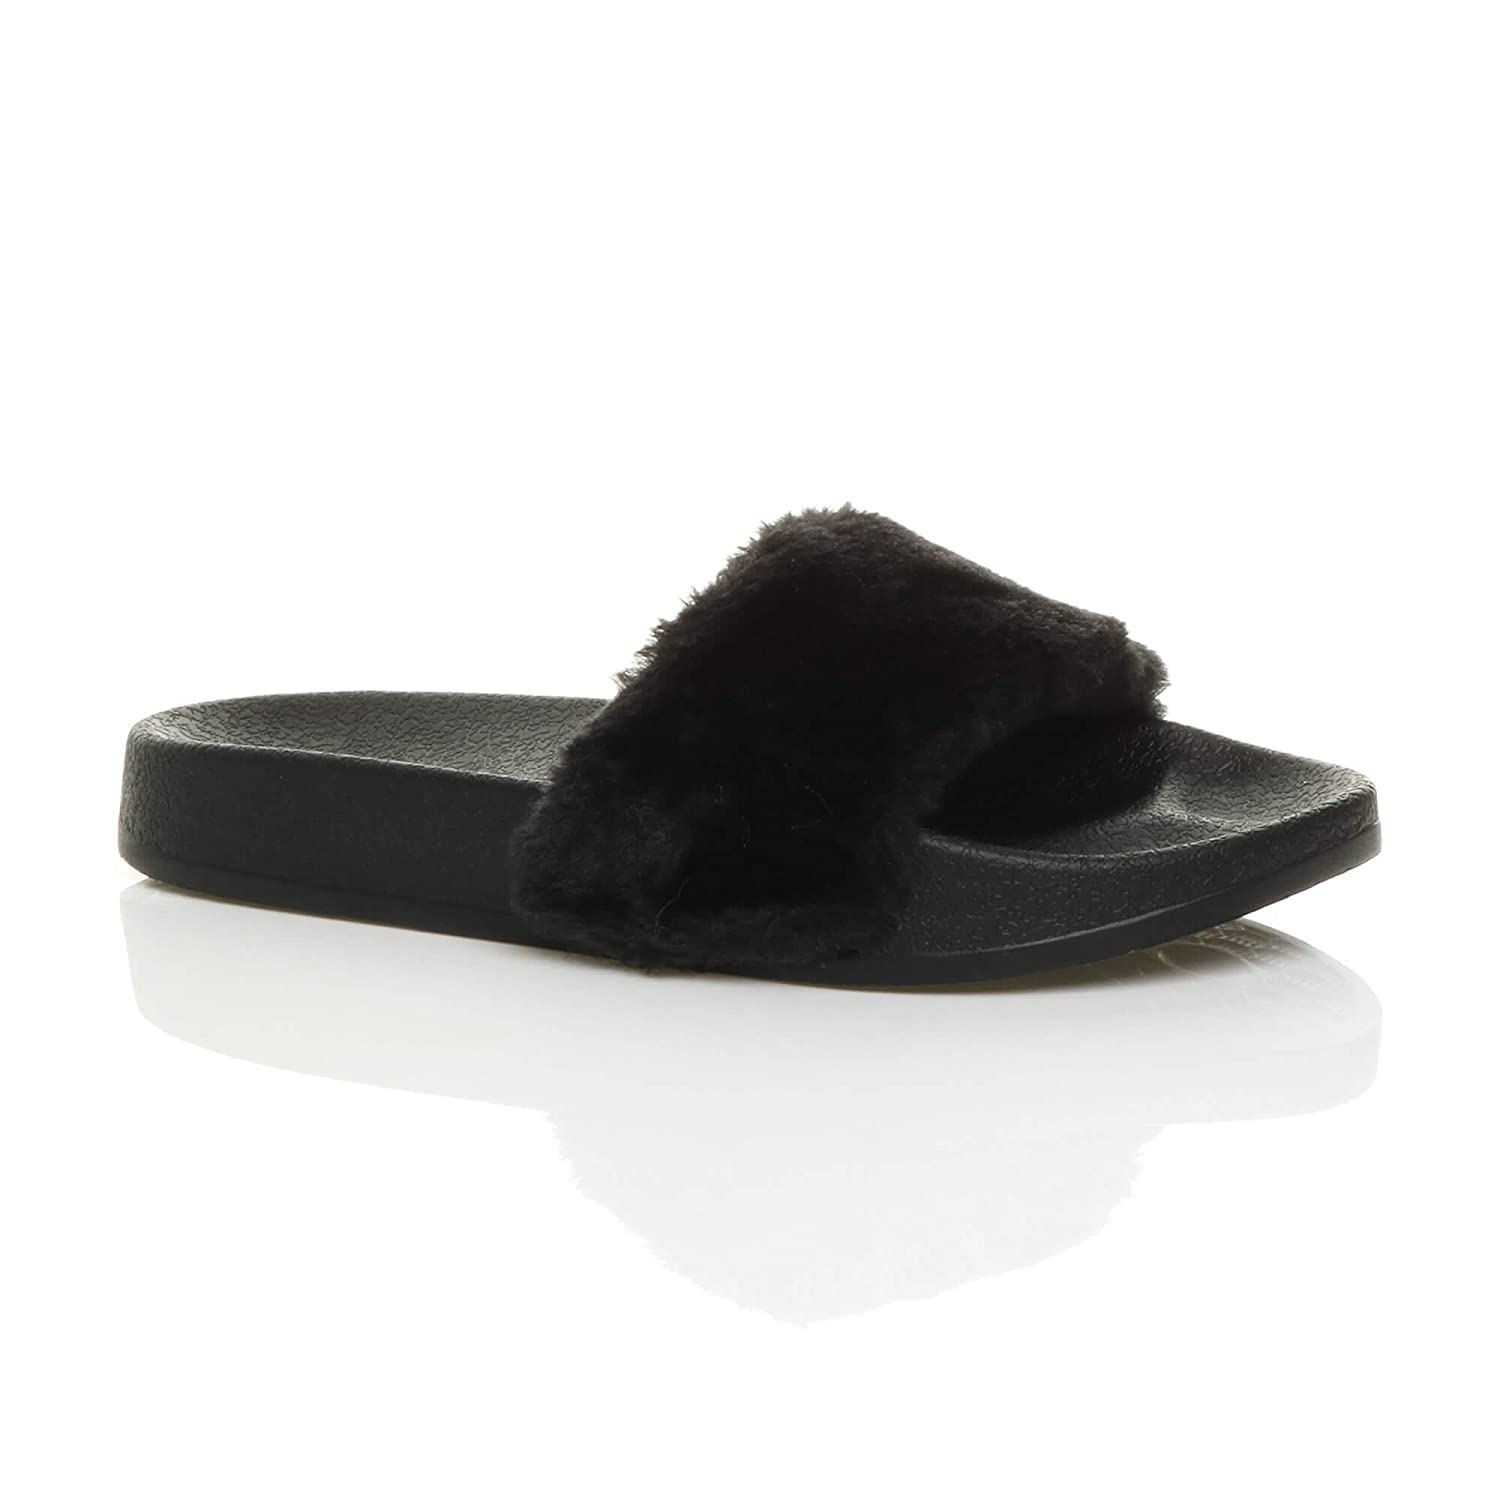 27fb014f41a3 Ajvani Womens Ladies Flat Faux Fur Comfy Slip on flip Flop Sliders Slipper  Sandals Size  Amazon.co.uk  Shoes   Bags